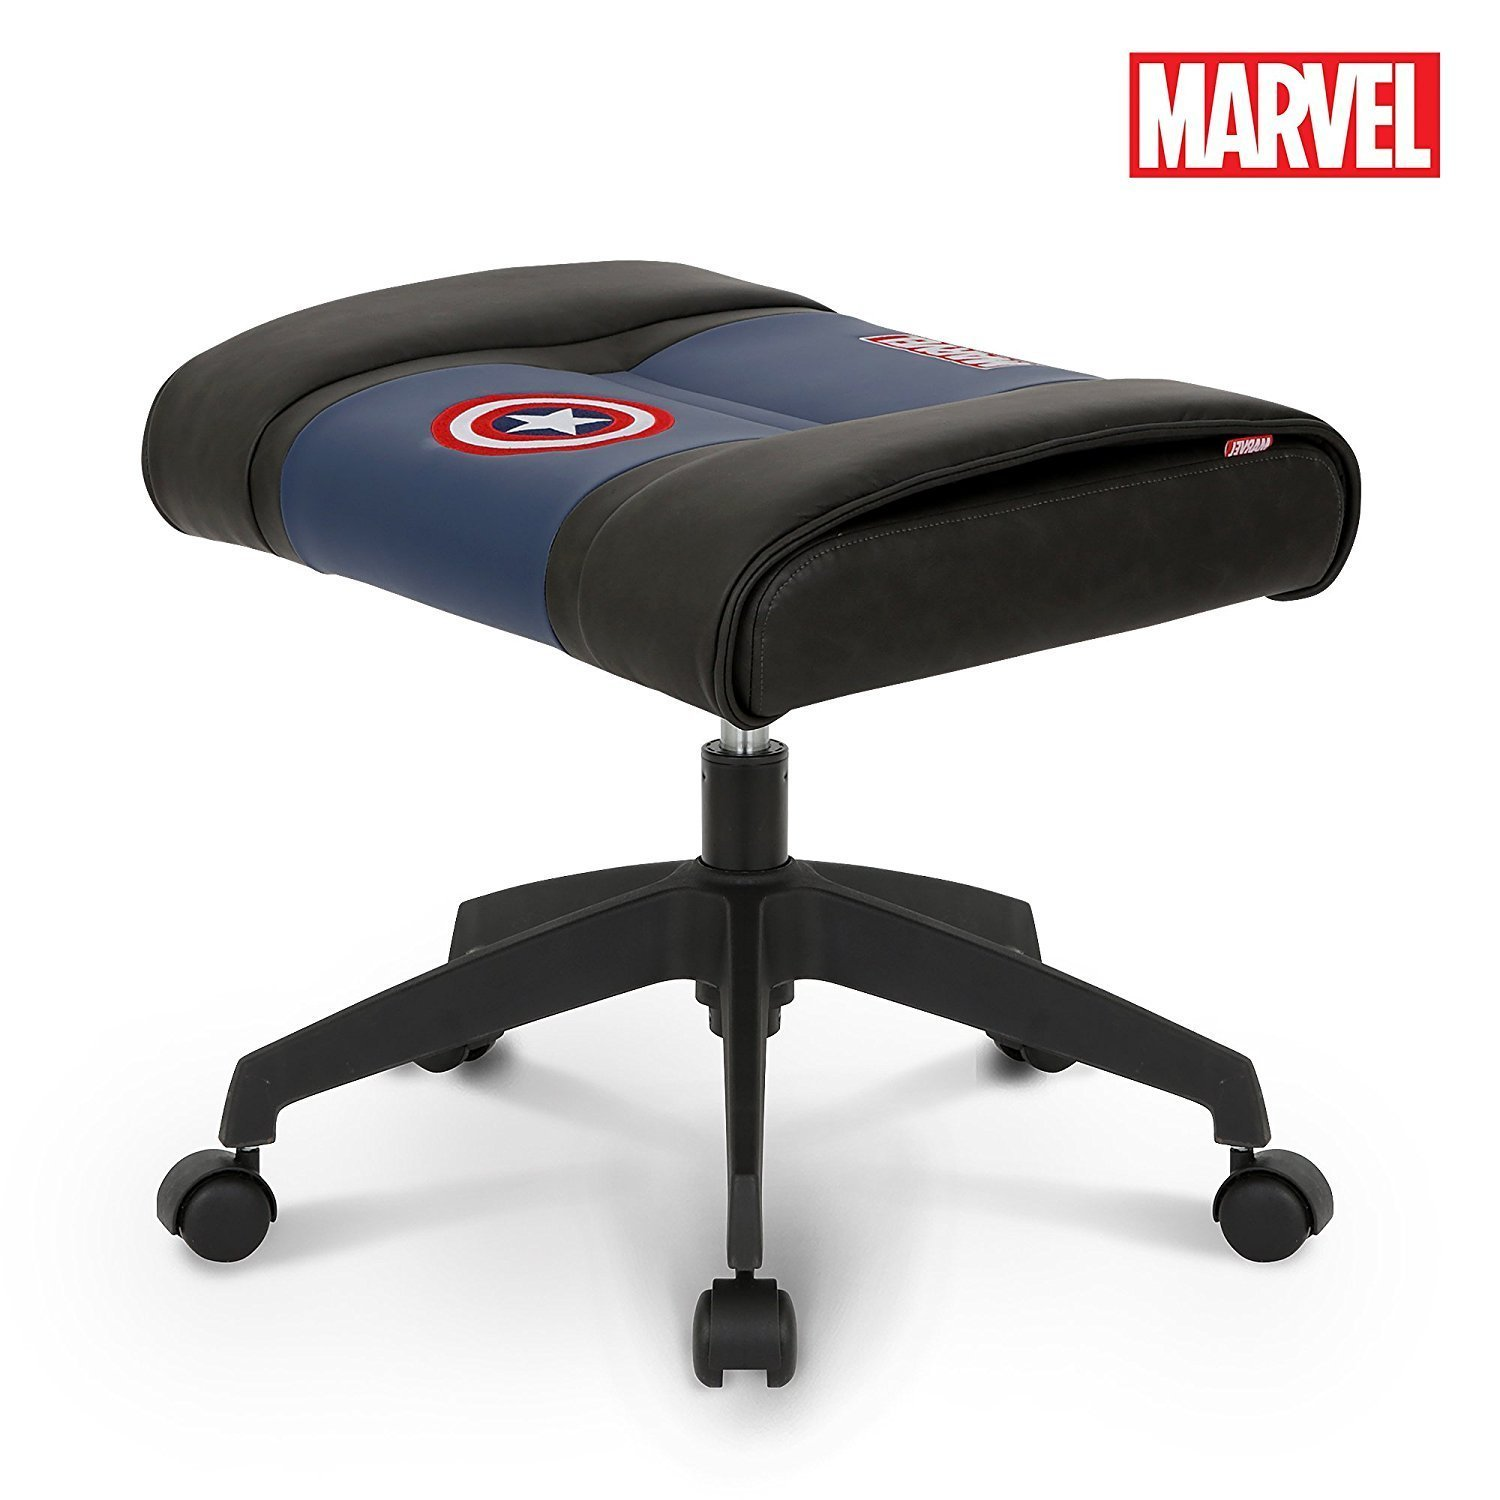 Licensed Marvel Ottoman Foot Rest Seat Stool Makeup Chair w/Wheel : Height Adjustable Office Home Furniture Premium PU Leather, Neo Chair (Captain America, Blue)